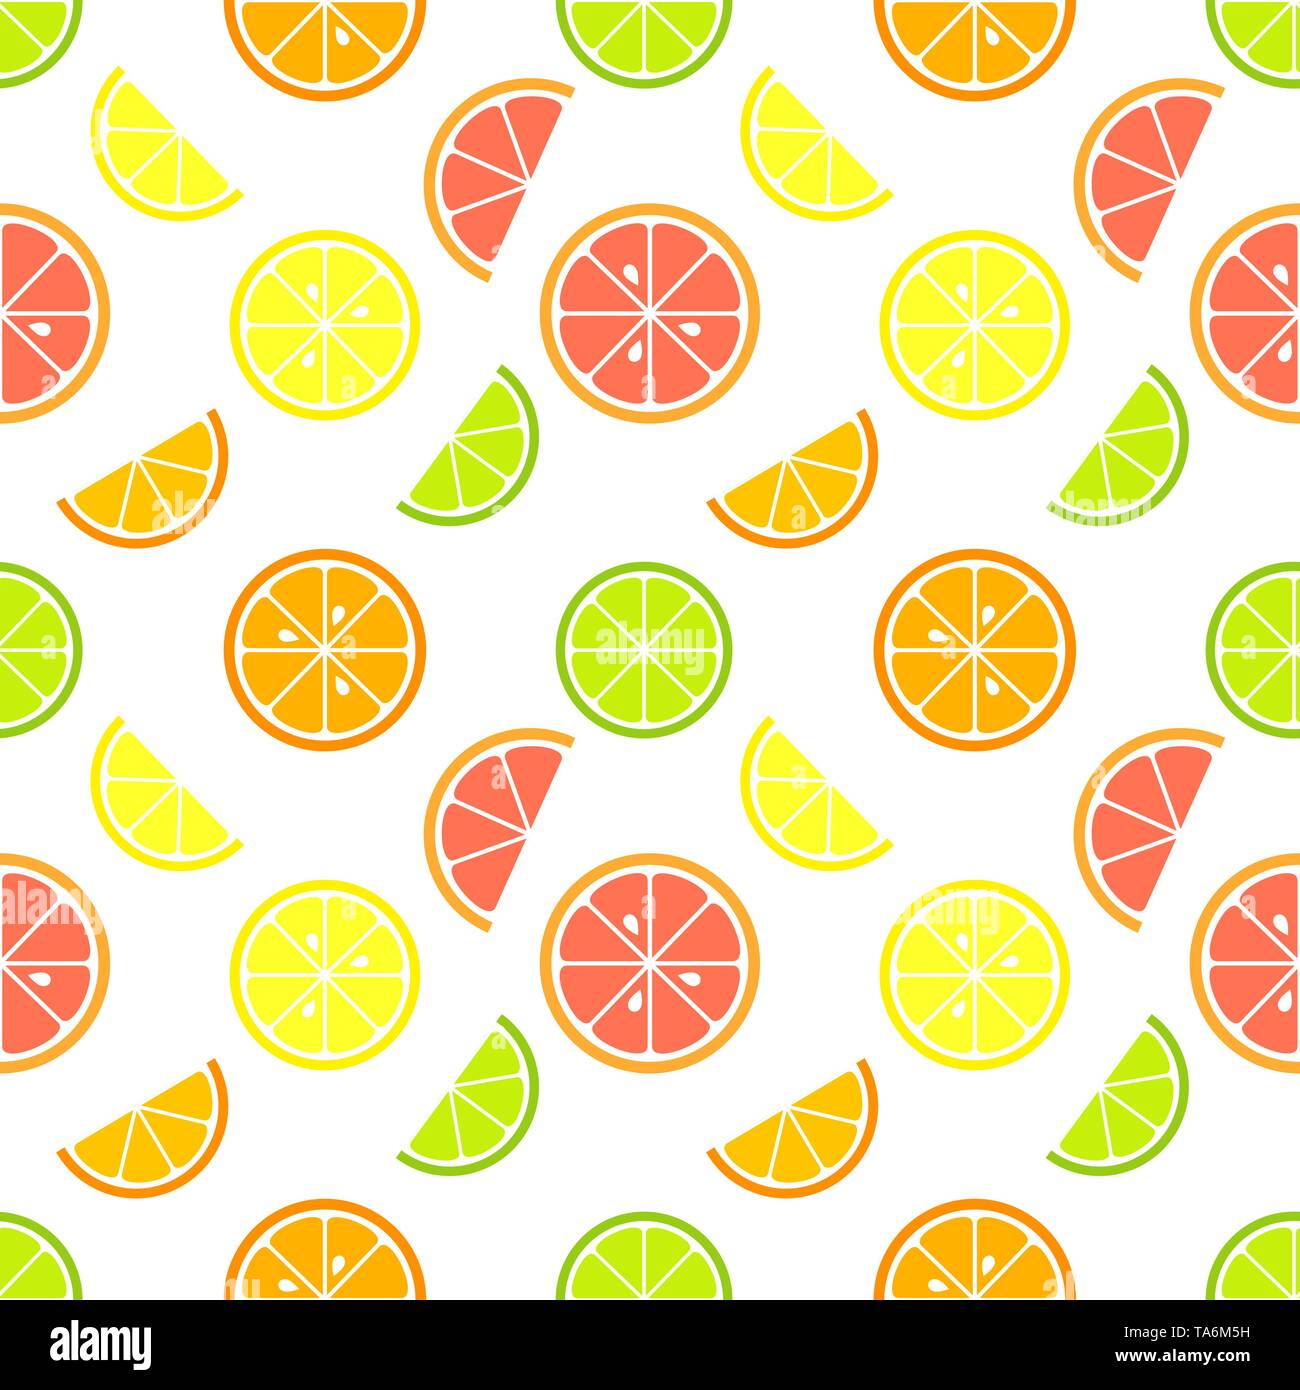 Citrus fruit slices seamless pattern. Vector illustration - Stock Image